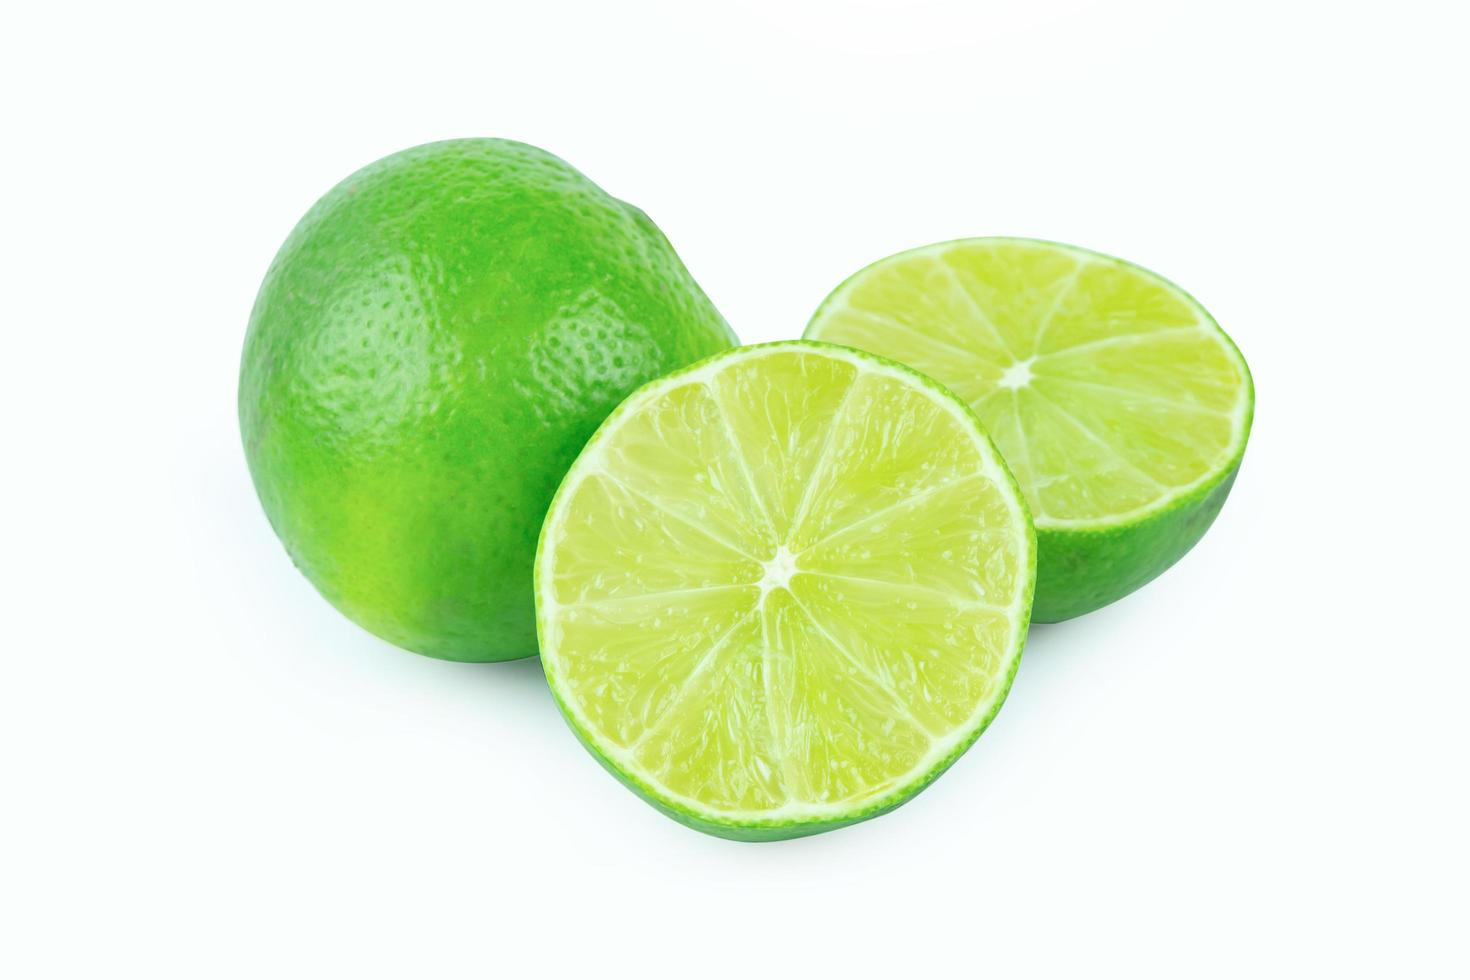 A pair of limes photo